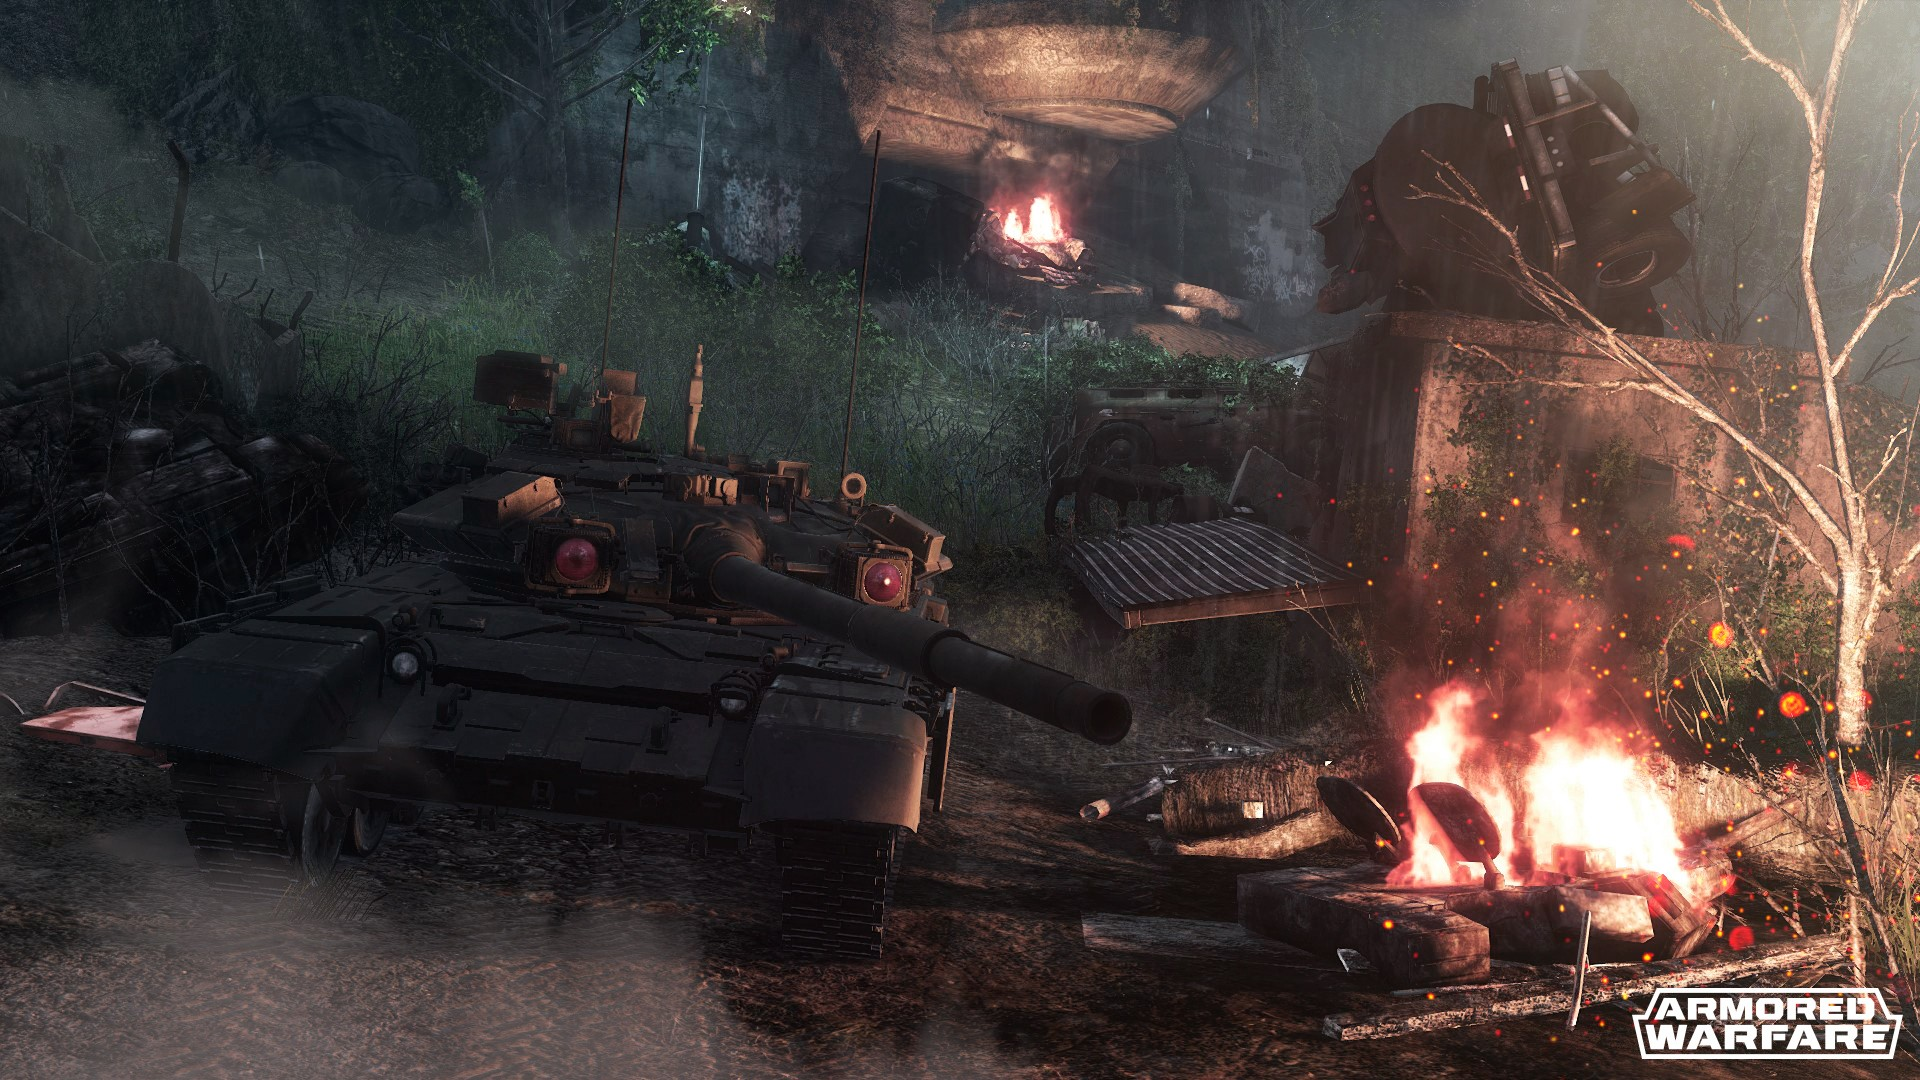 armored warfare 10072015 2